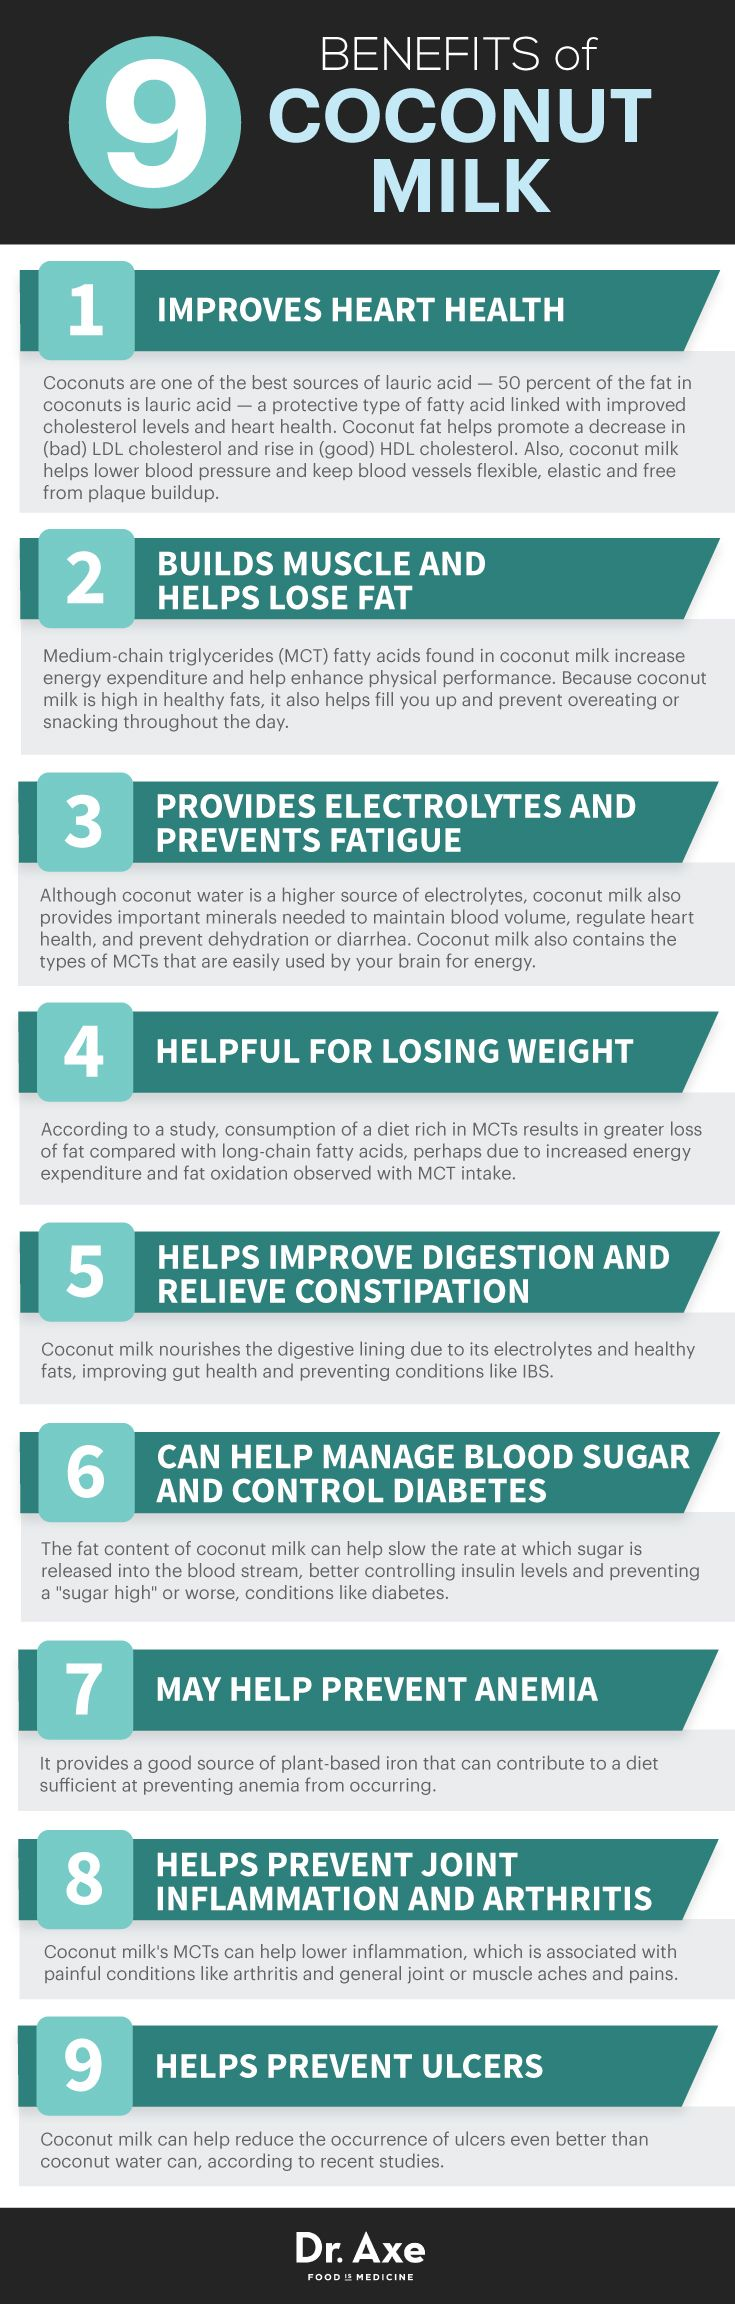 9 Coconut Milk Nutritional Benefits + Recipes - Dr. Axe